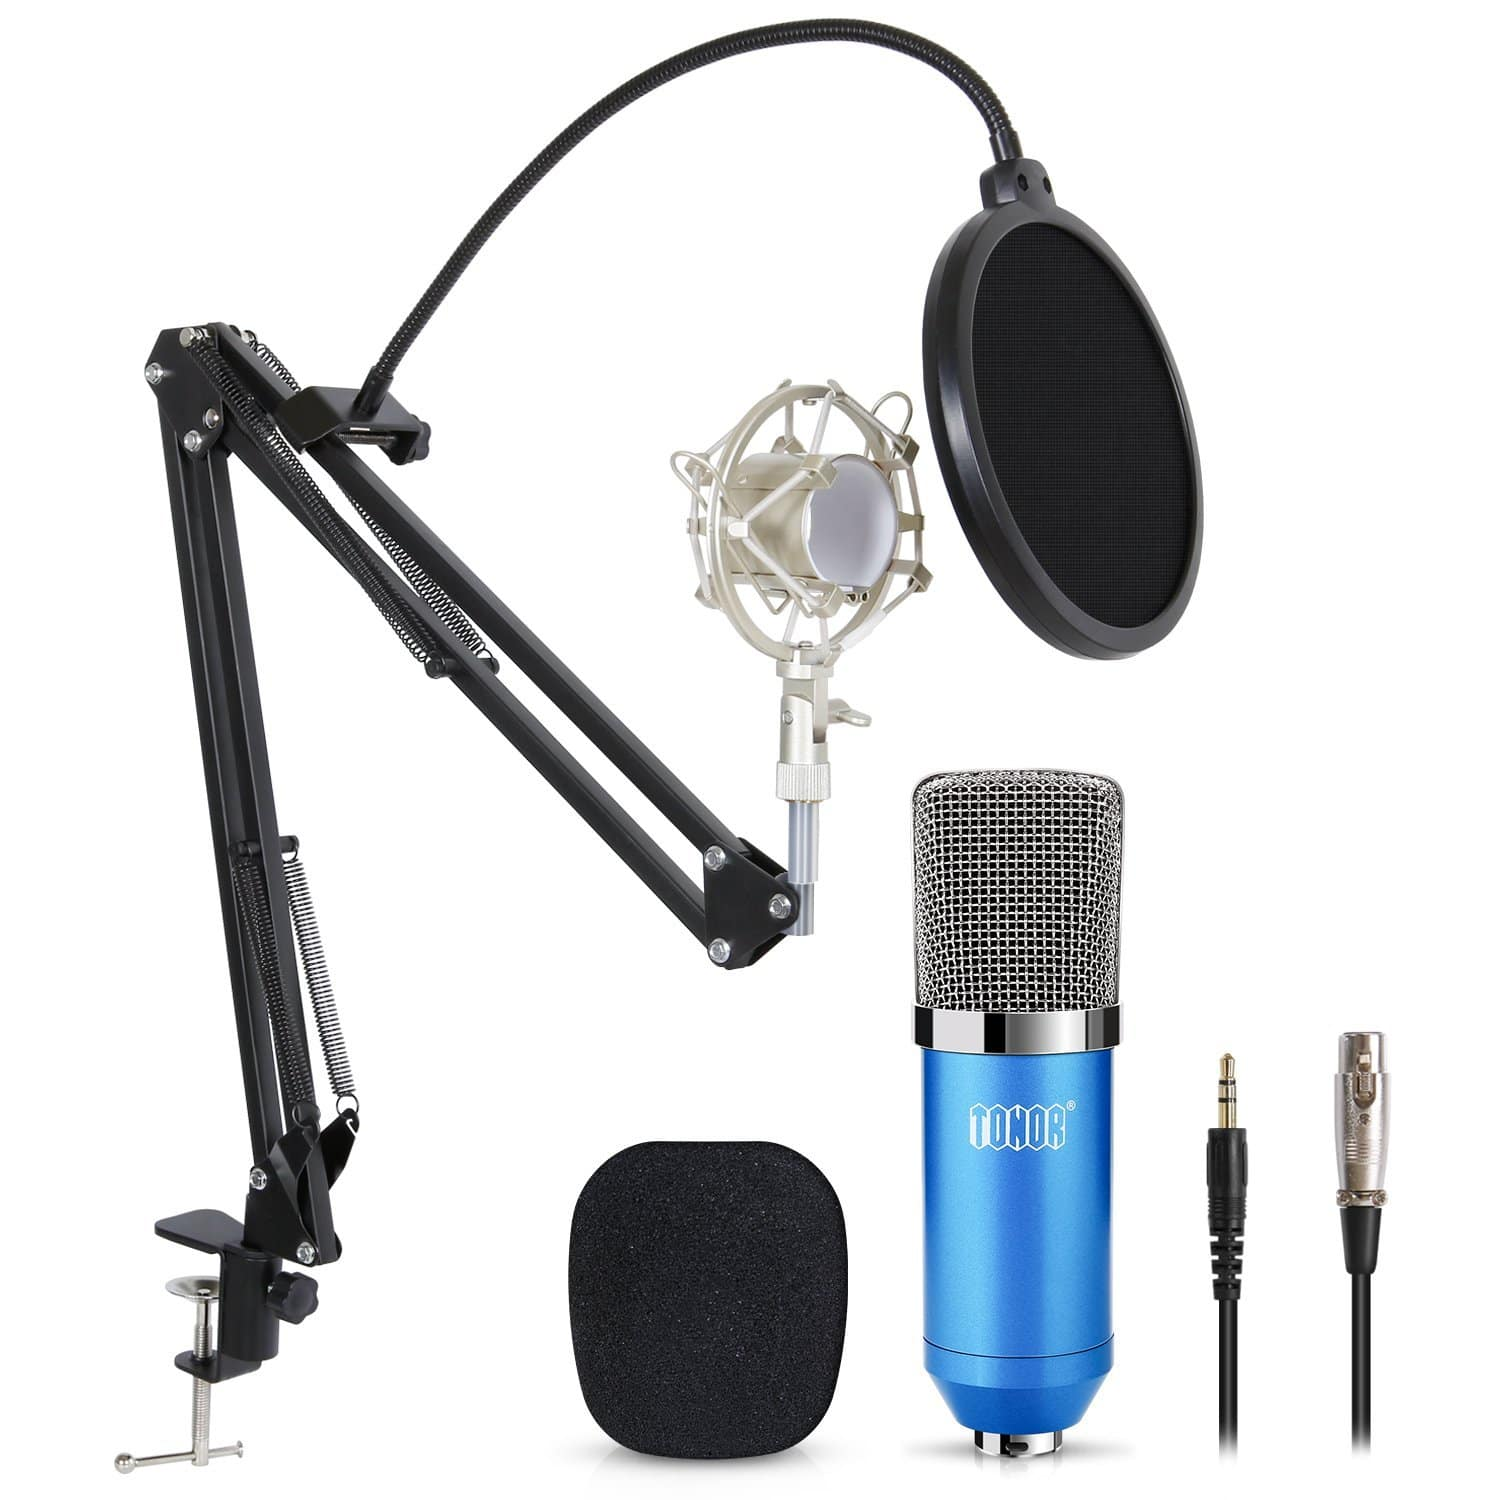 Pro Condenser PC Microphone Kit with 3.5mm XLR Mic for Computer Studio Recording Broadcast with Pop Filter Scissor Arm Stand Shock Mount $24.95